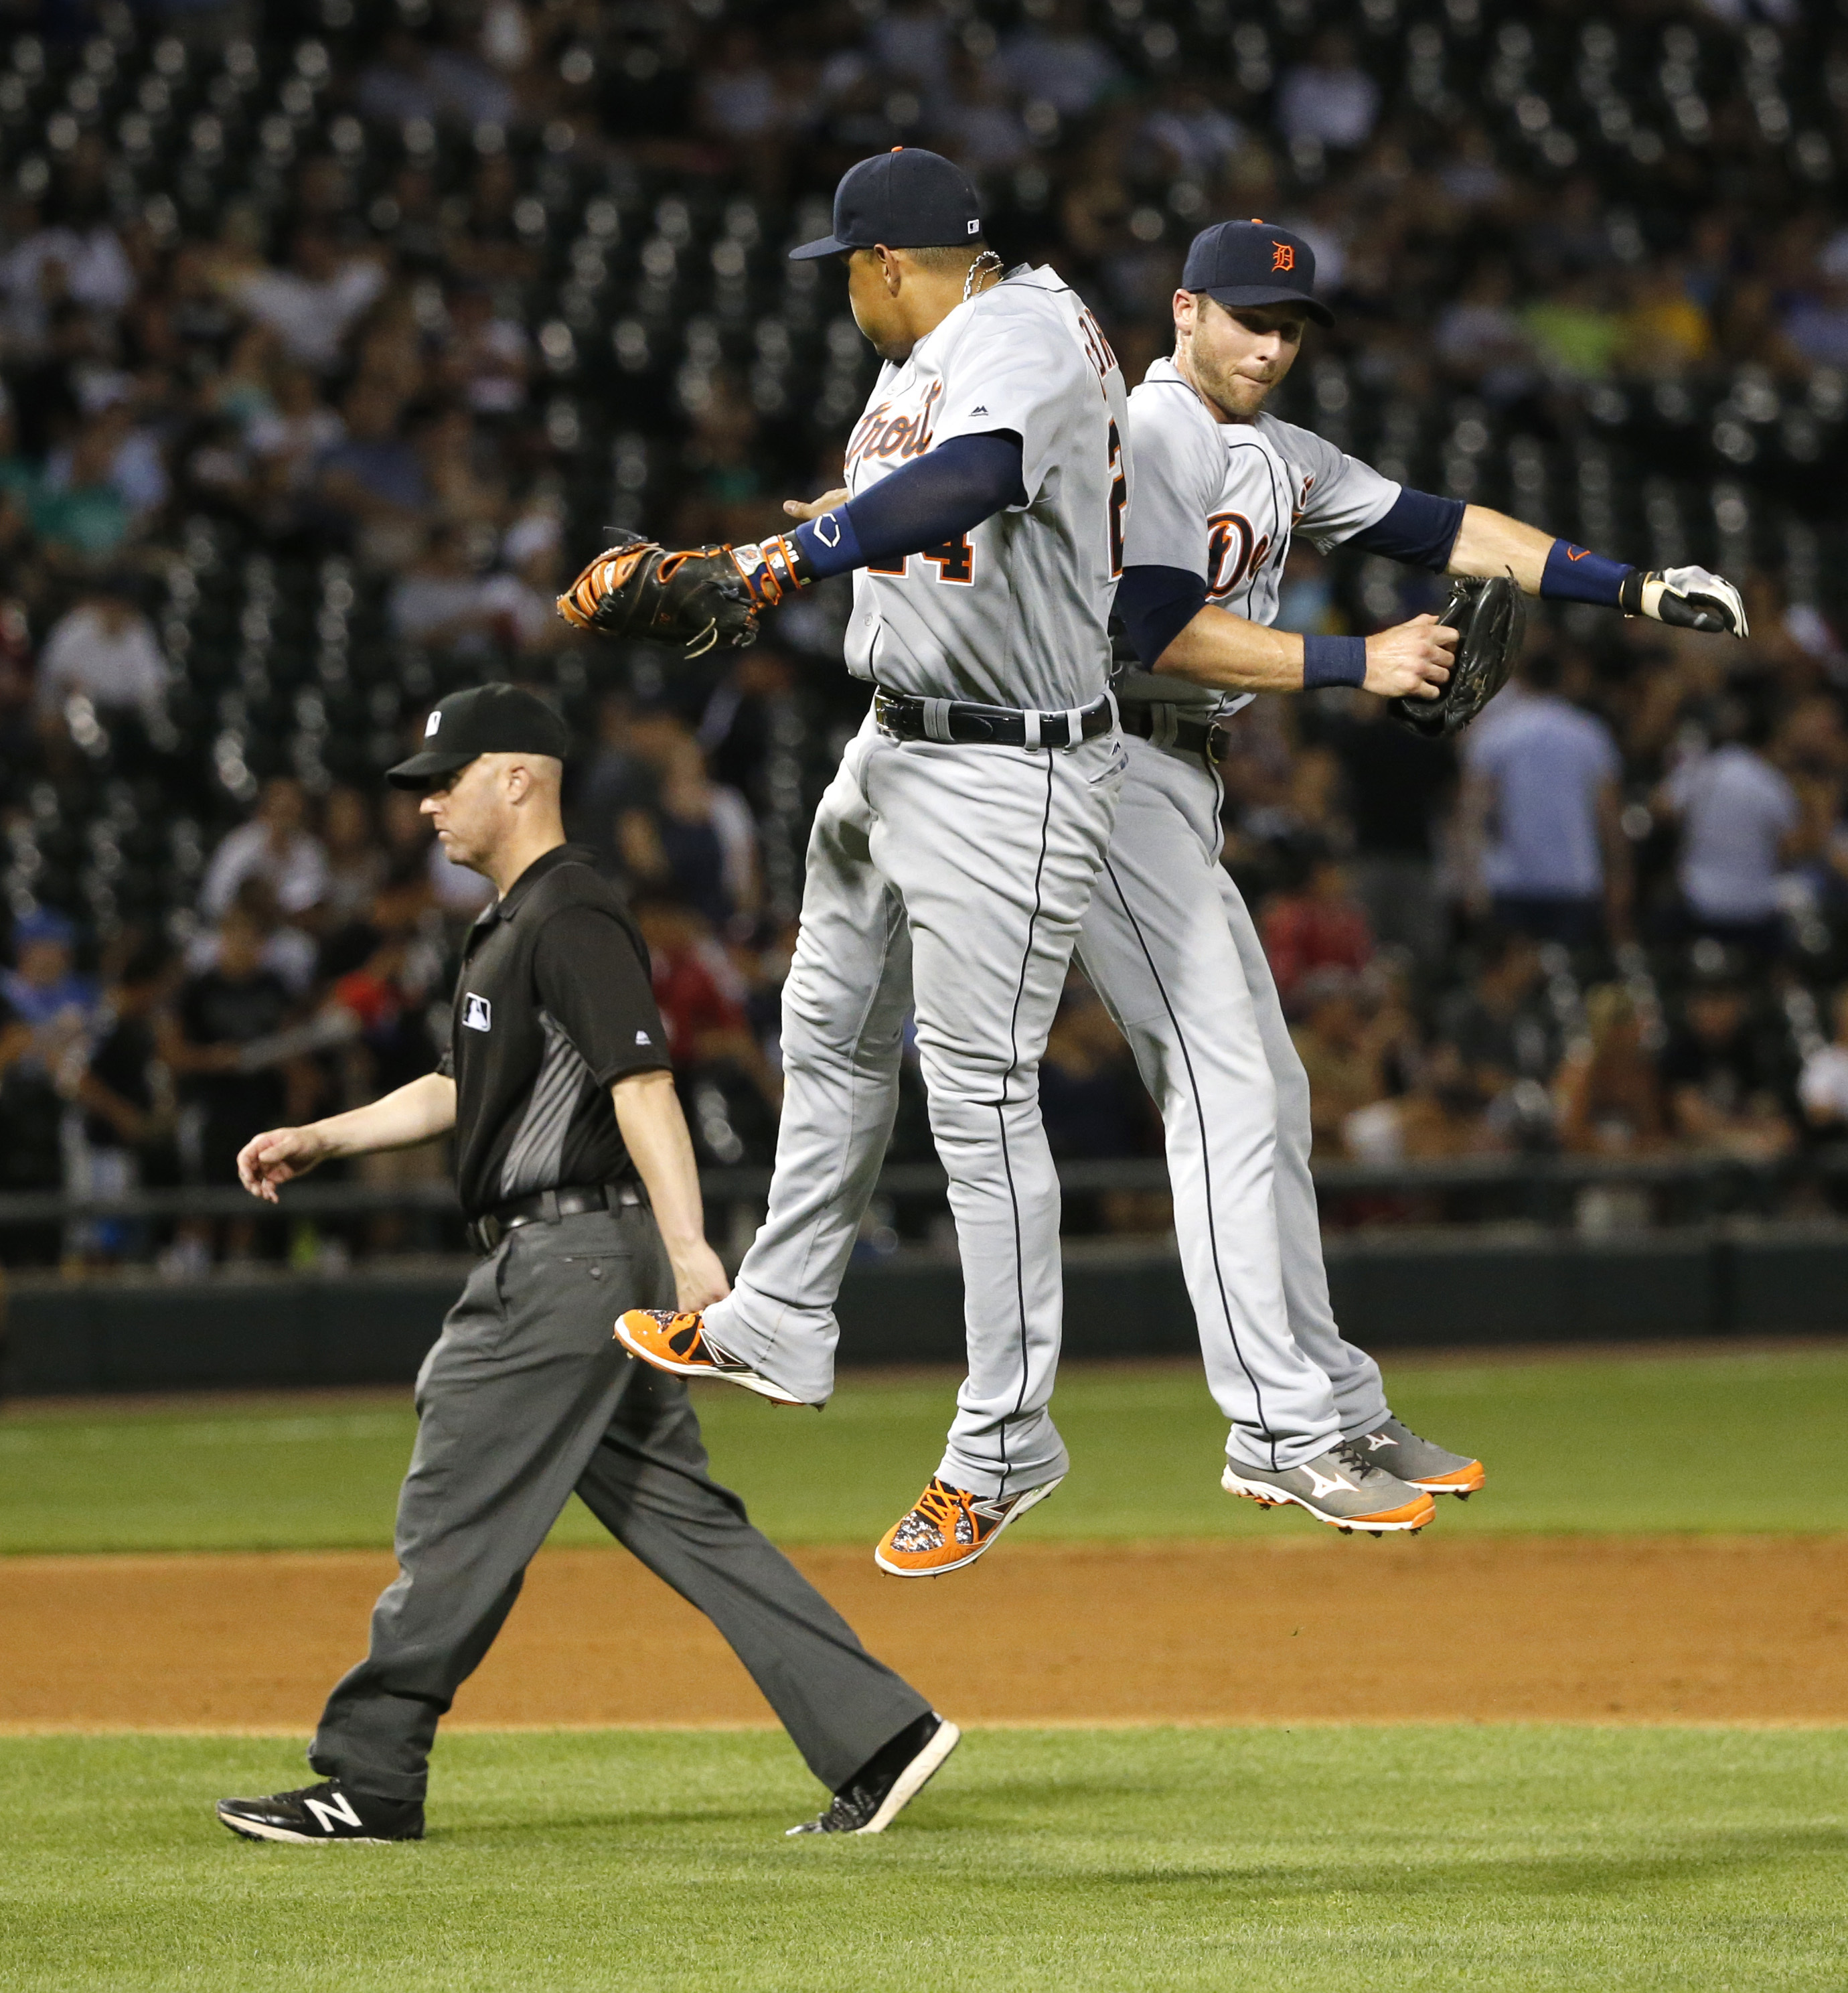 Detroit Tigers first baseman Miguel Cabrera, center, and third baseman Andrew Romine celebrate the Tigers' 7-5 win over the Chicago White Sox as second base umpire Ryan Blakney walks off the field after the baseball game Friday, July 22, 2016, in Chicago.